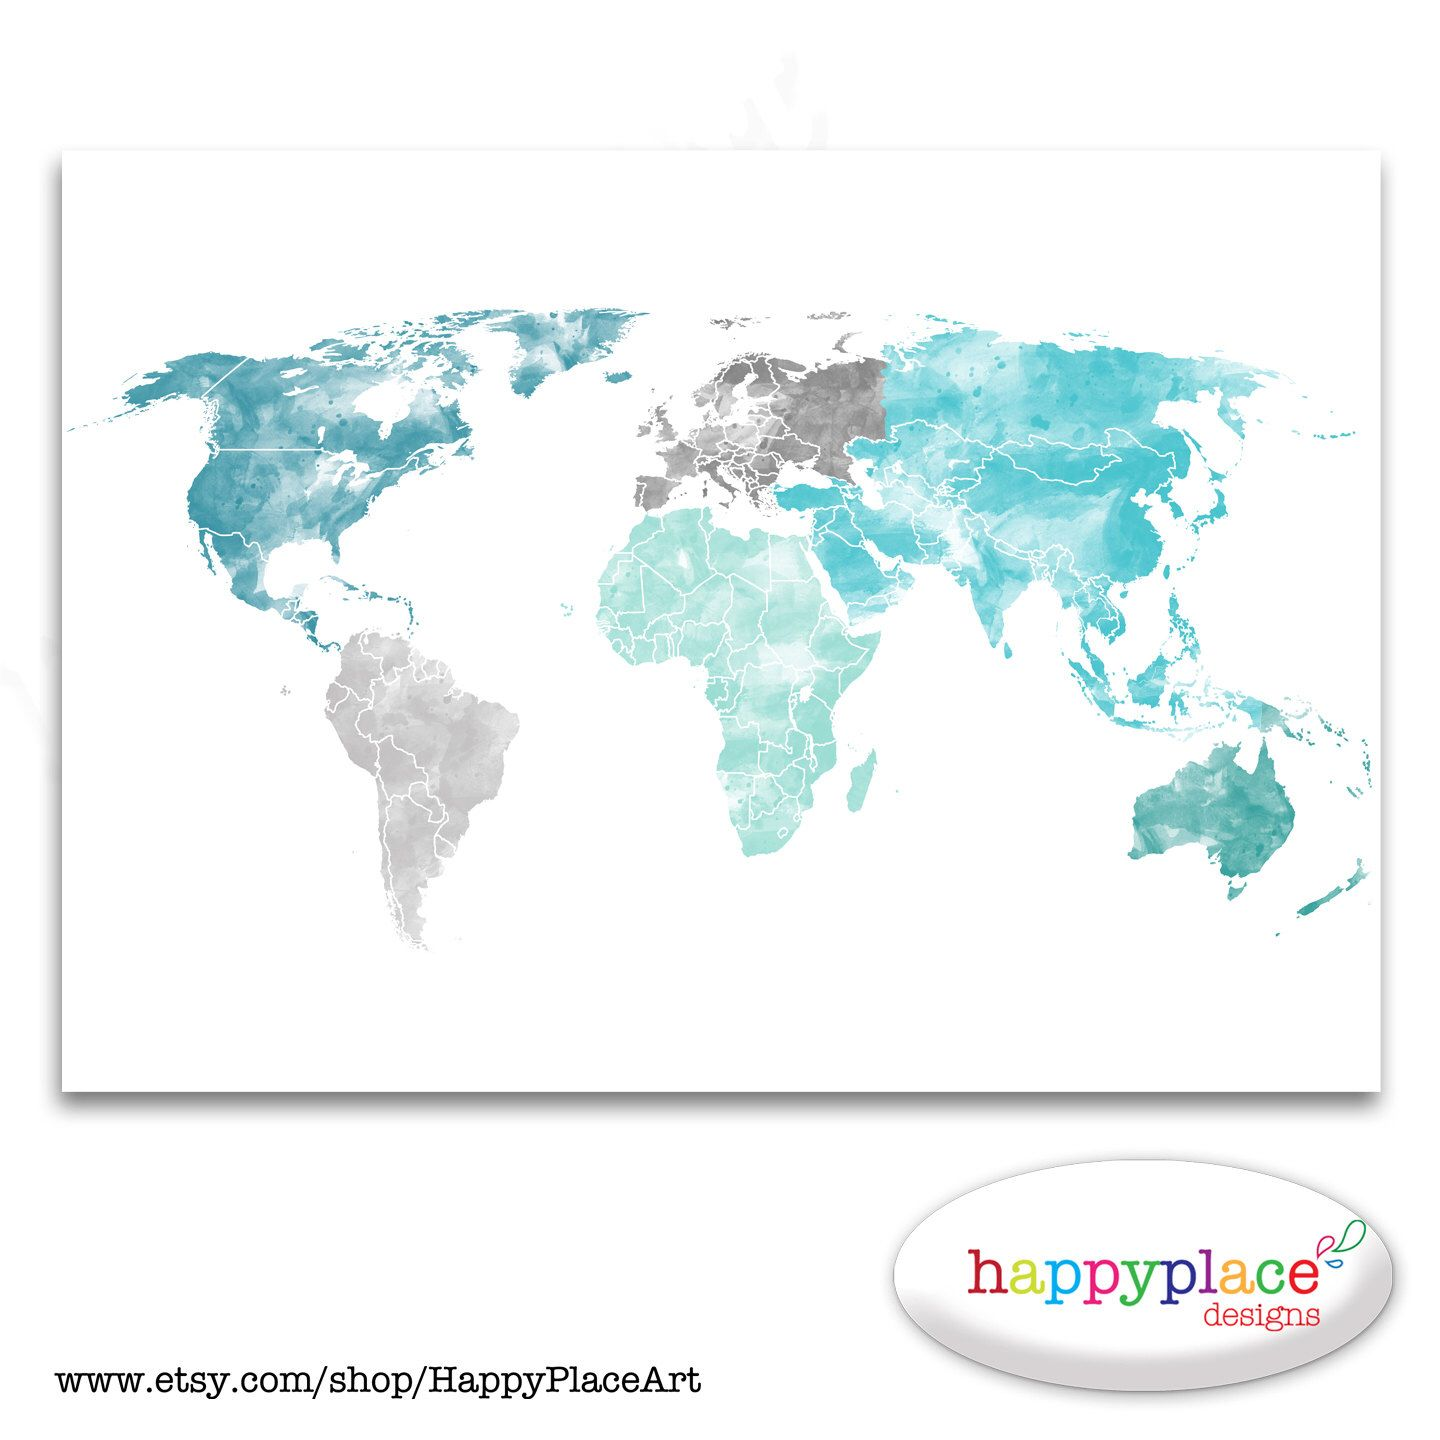 World Map Image For Print. Large World Map Print in Aqua  Turquoise and Green Watercolour Texture Custom Colour Watercolor map